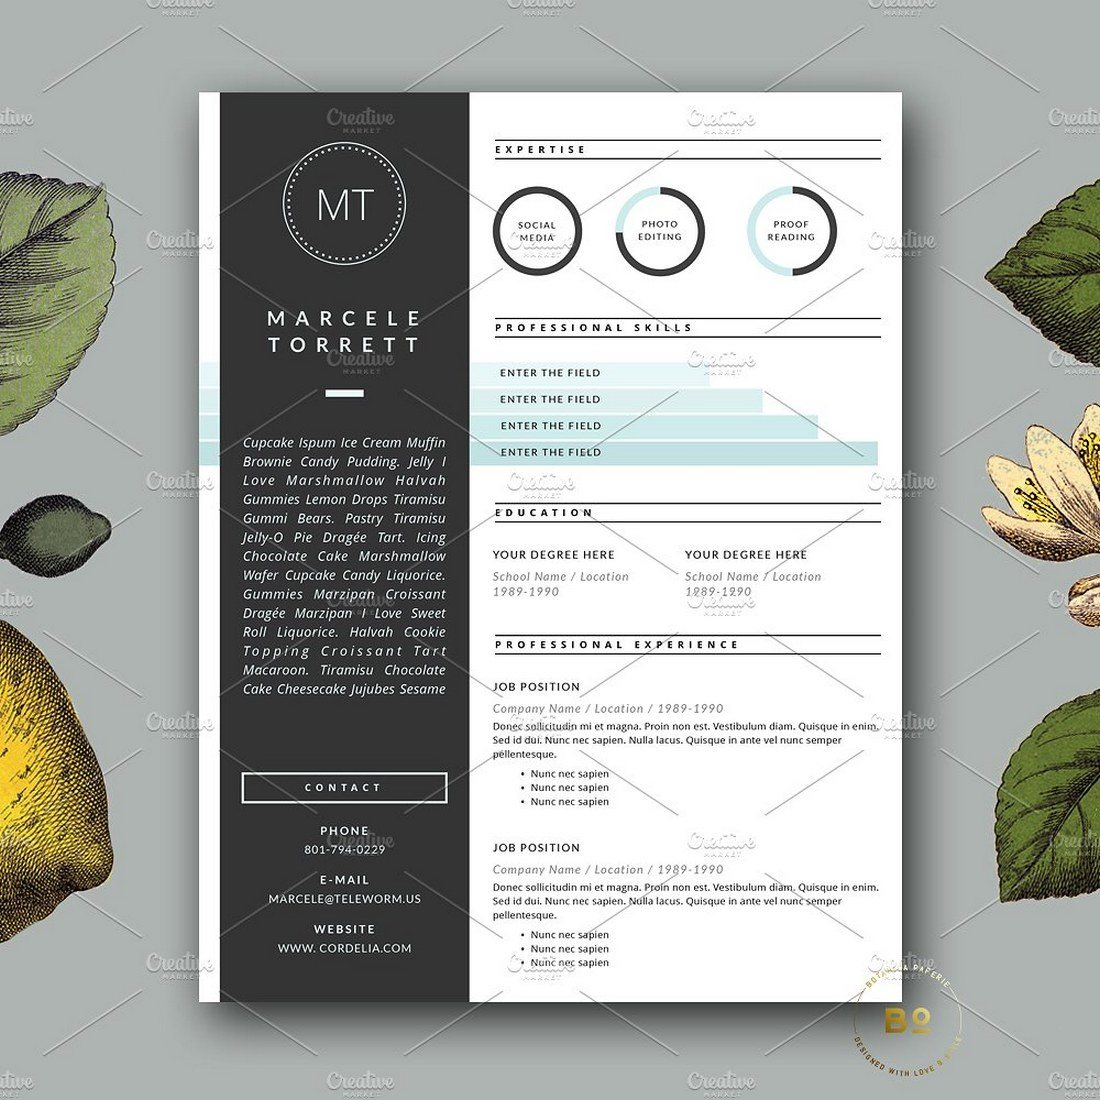 Modern-CV-Template-for-Pages 20+ Best Pages Resume & CV Templates design tips